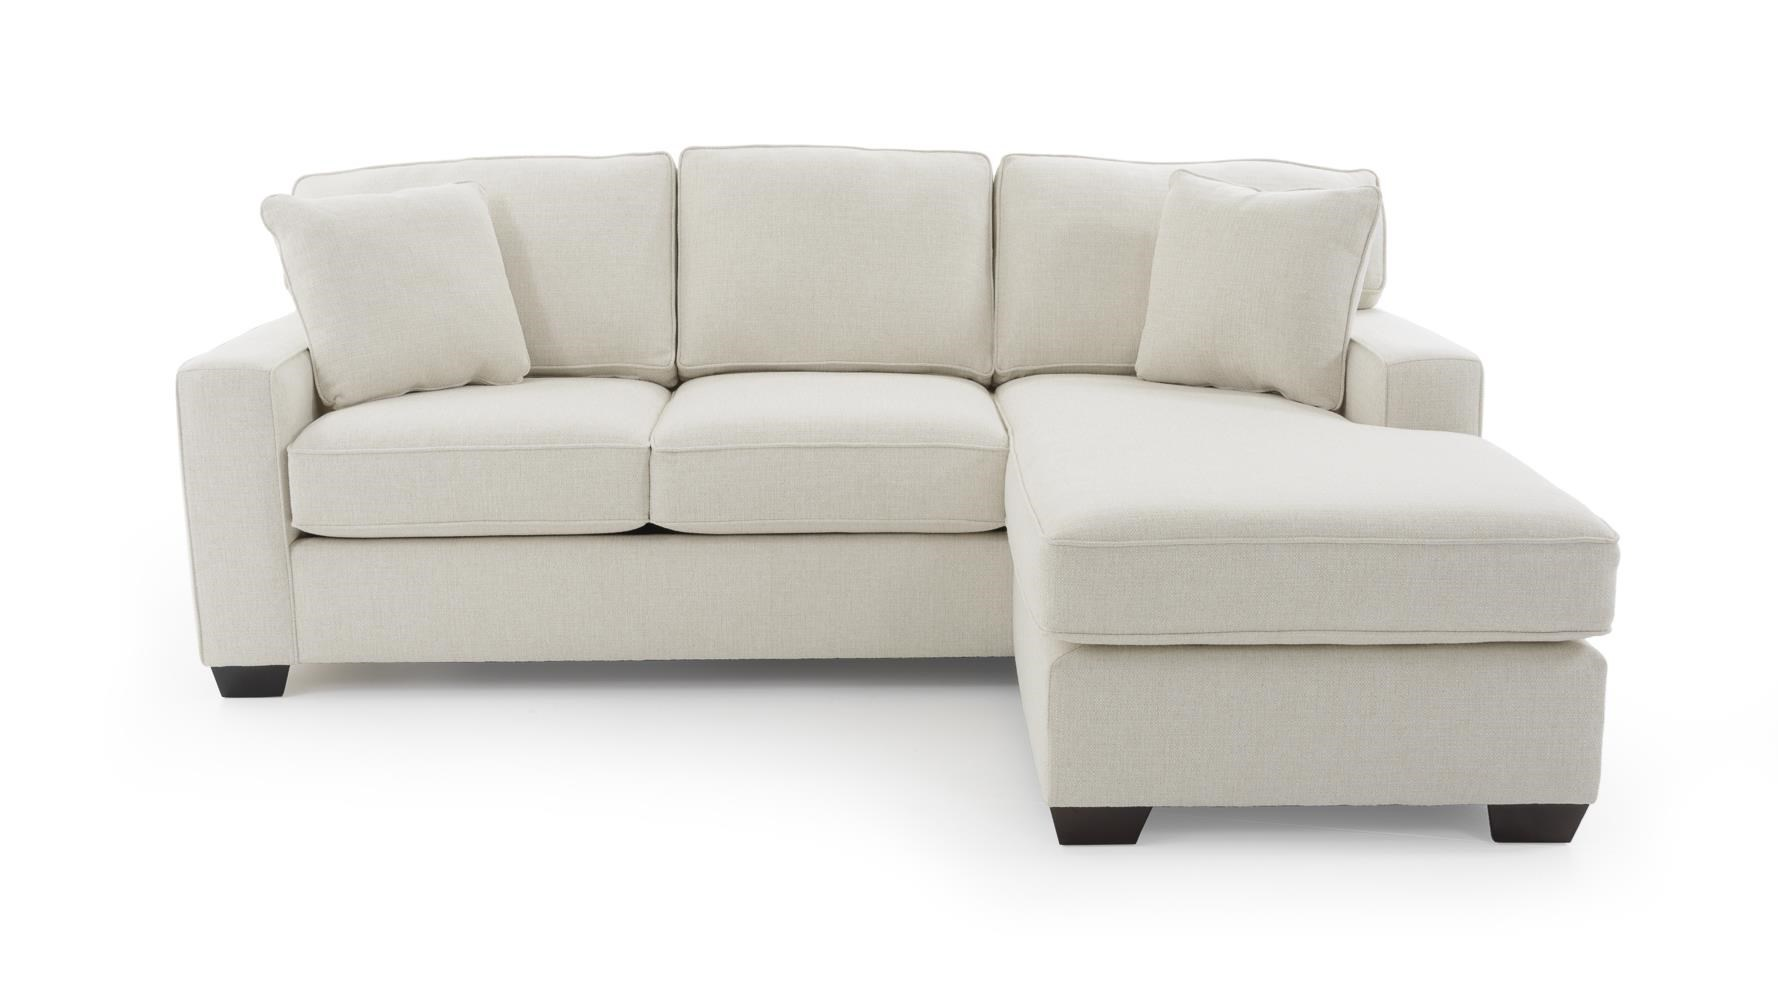 king sofa bed. Max Home BermudaSleeper Sofa With Removable Chaise King Sofa Bed